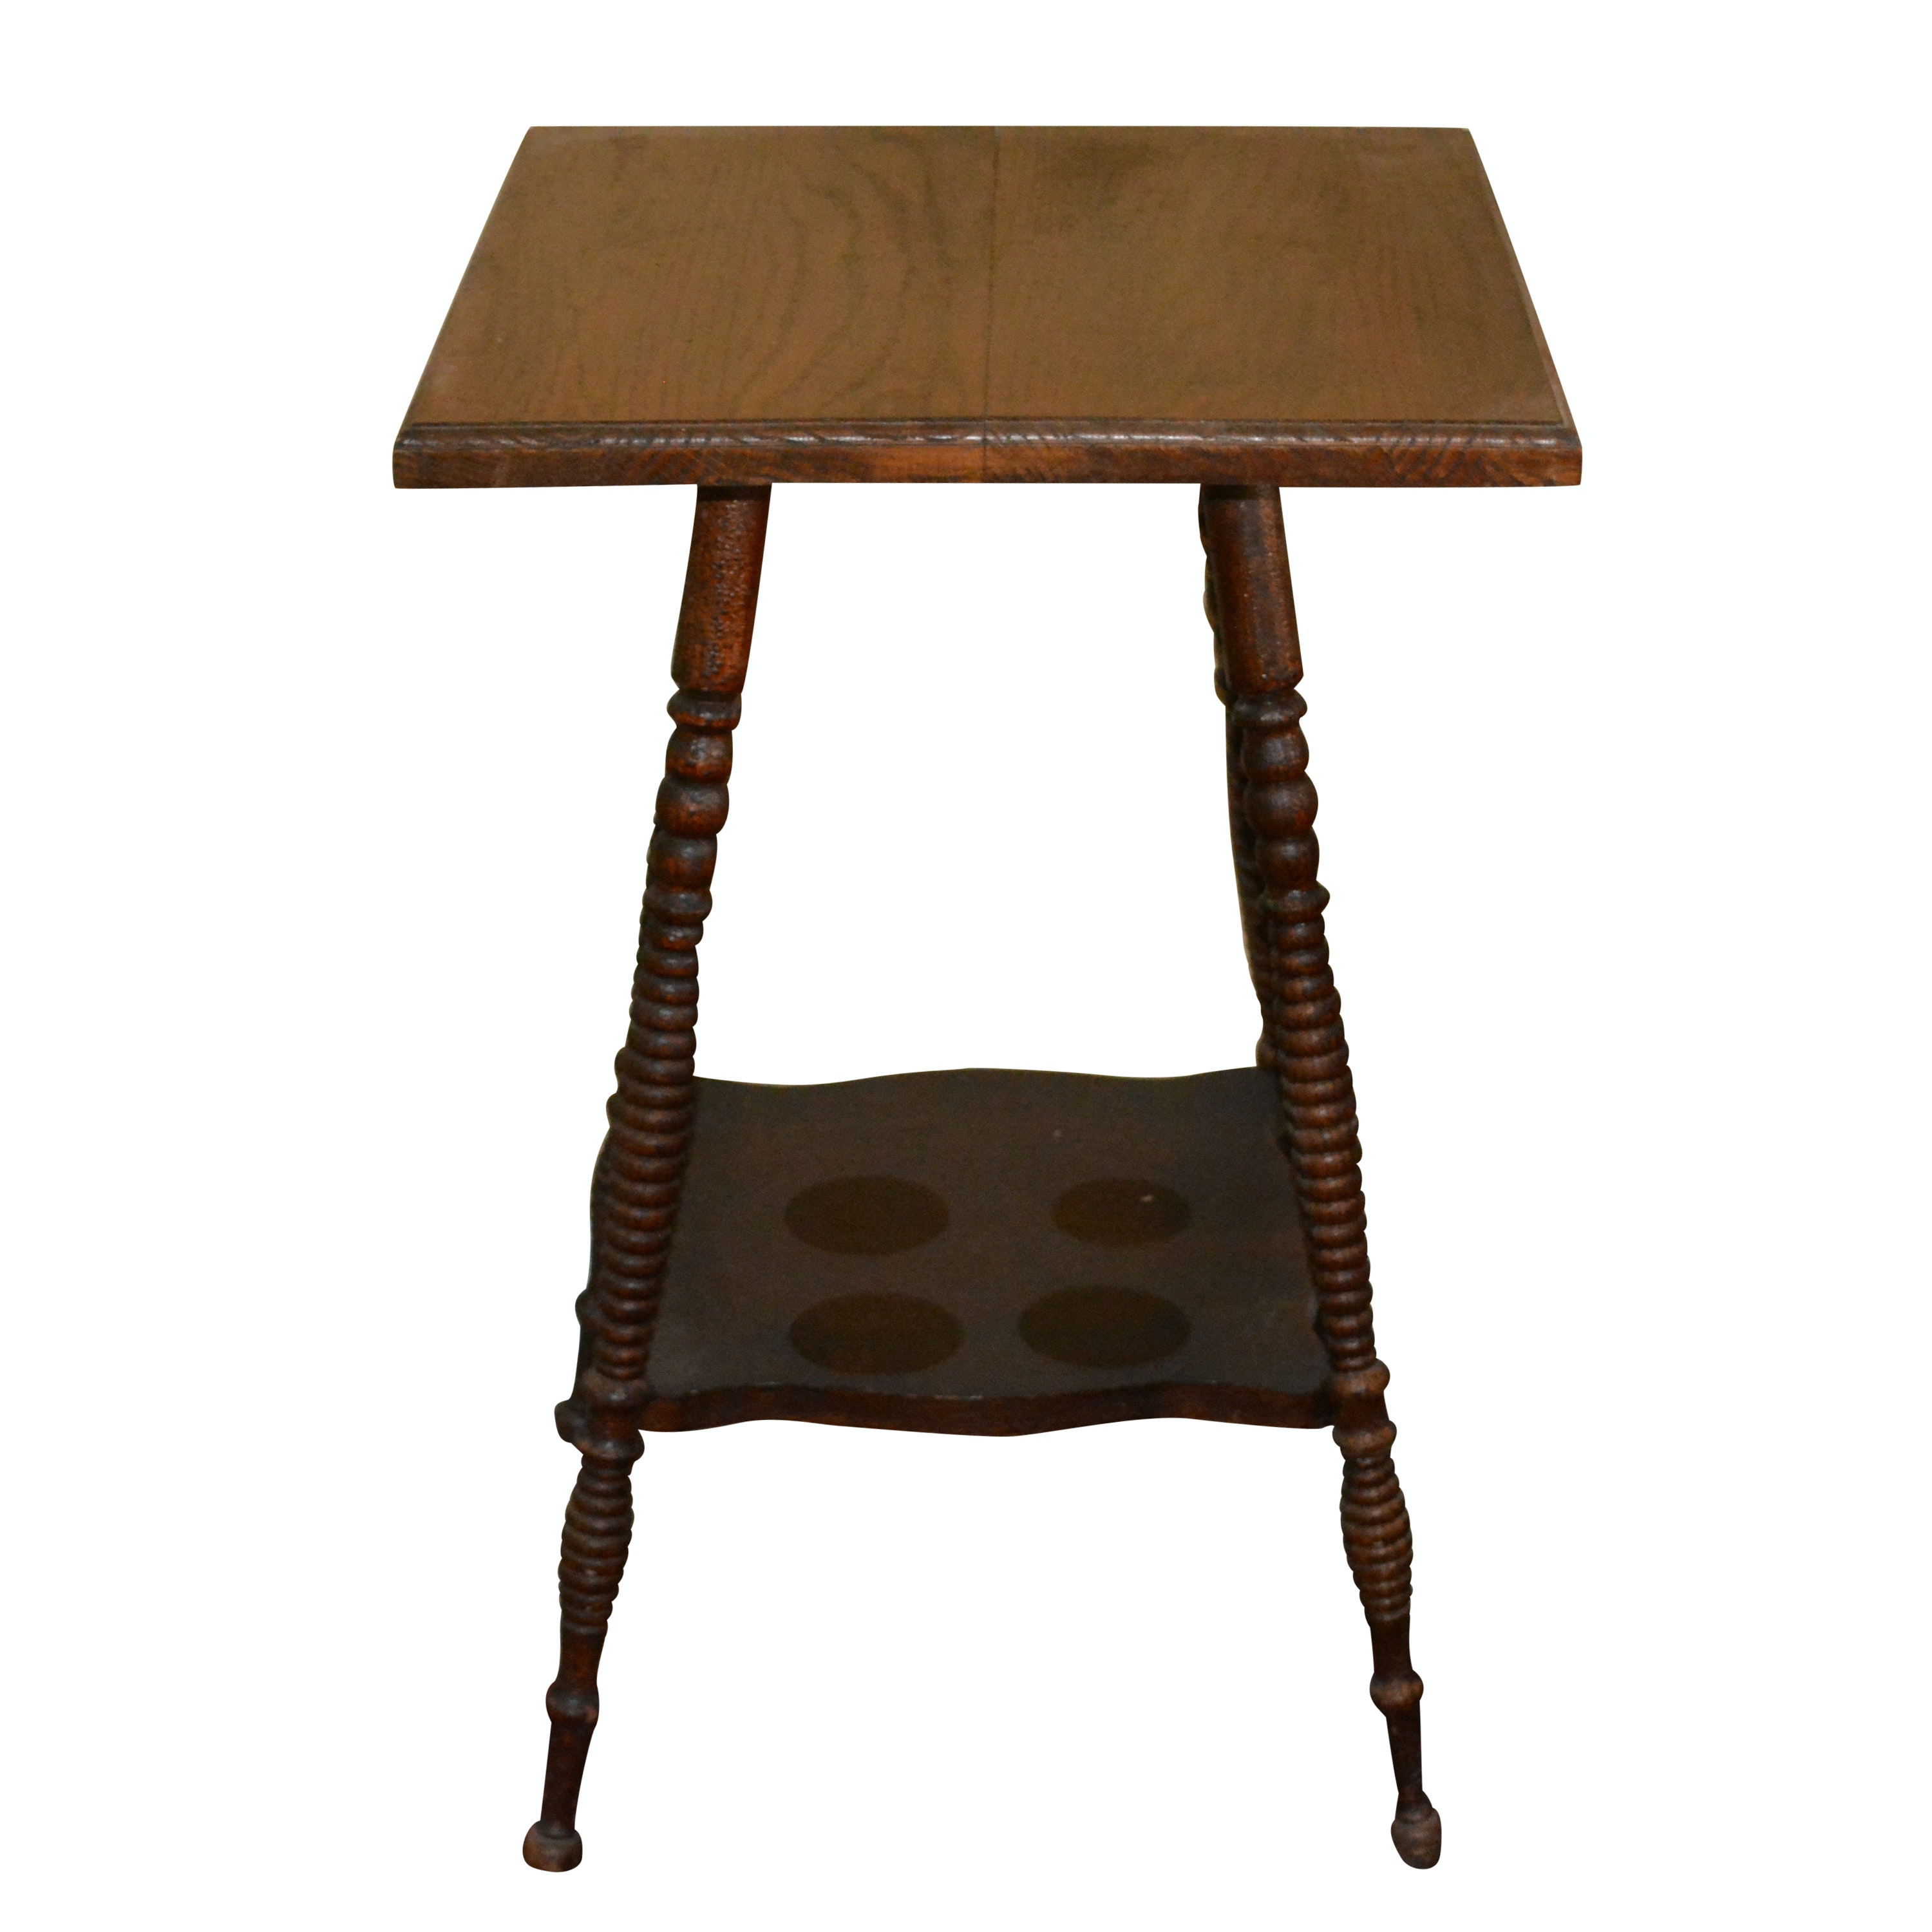 Antique Oak Square Tiered Table